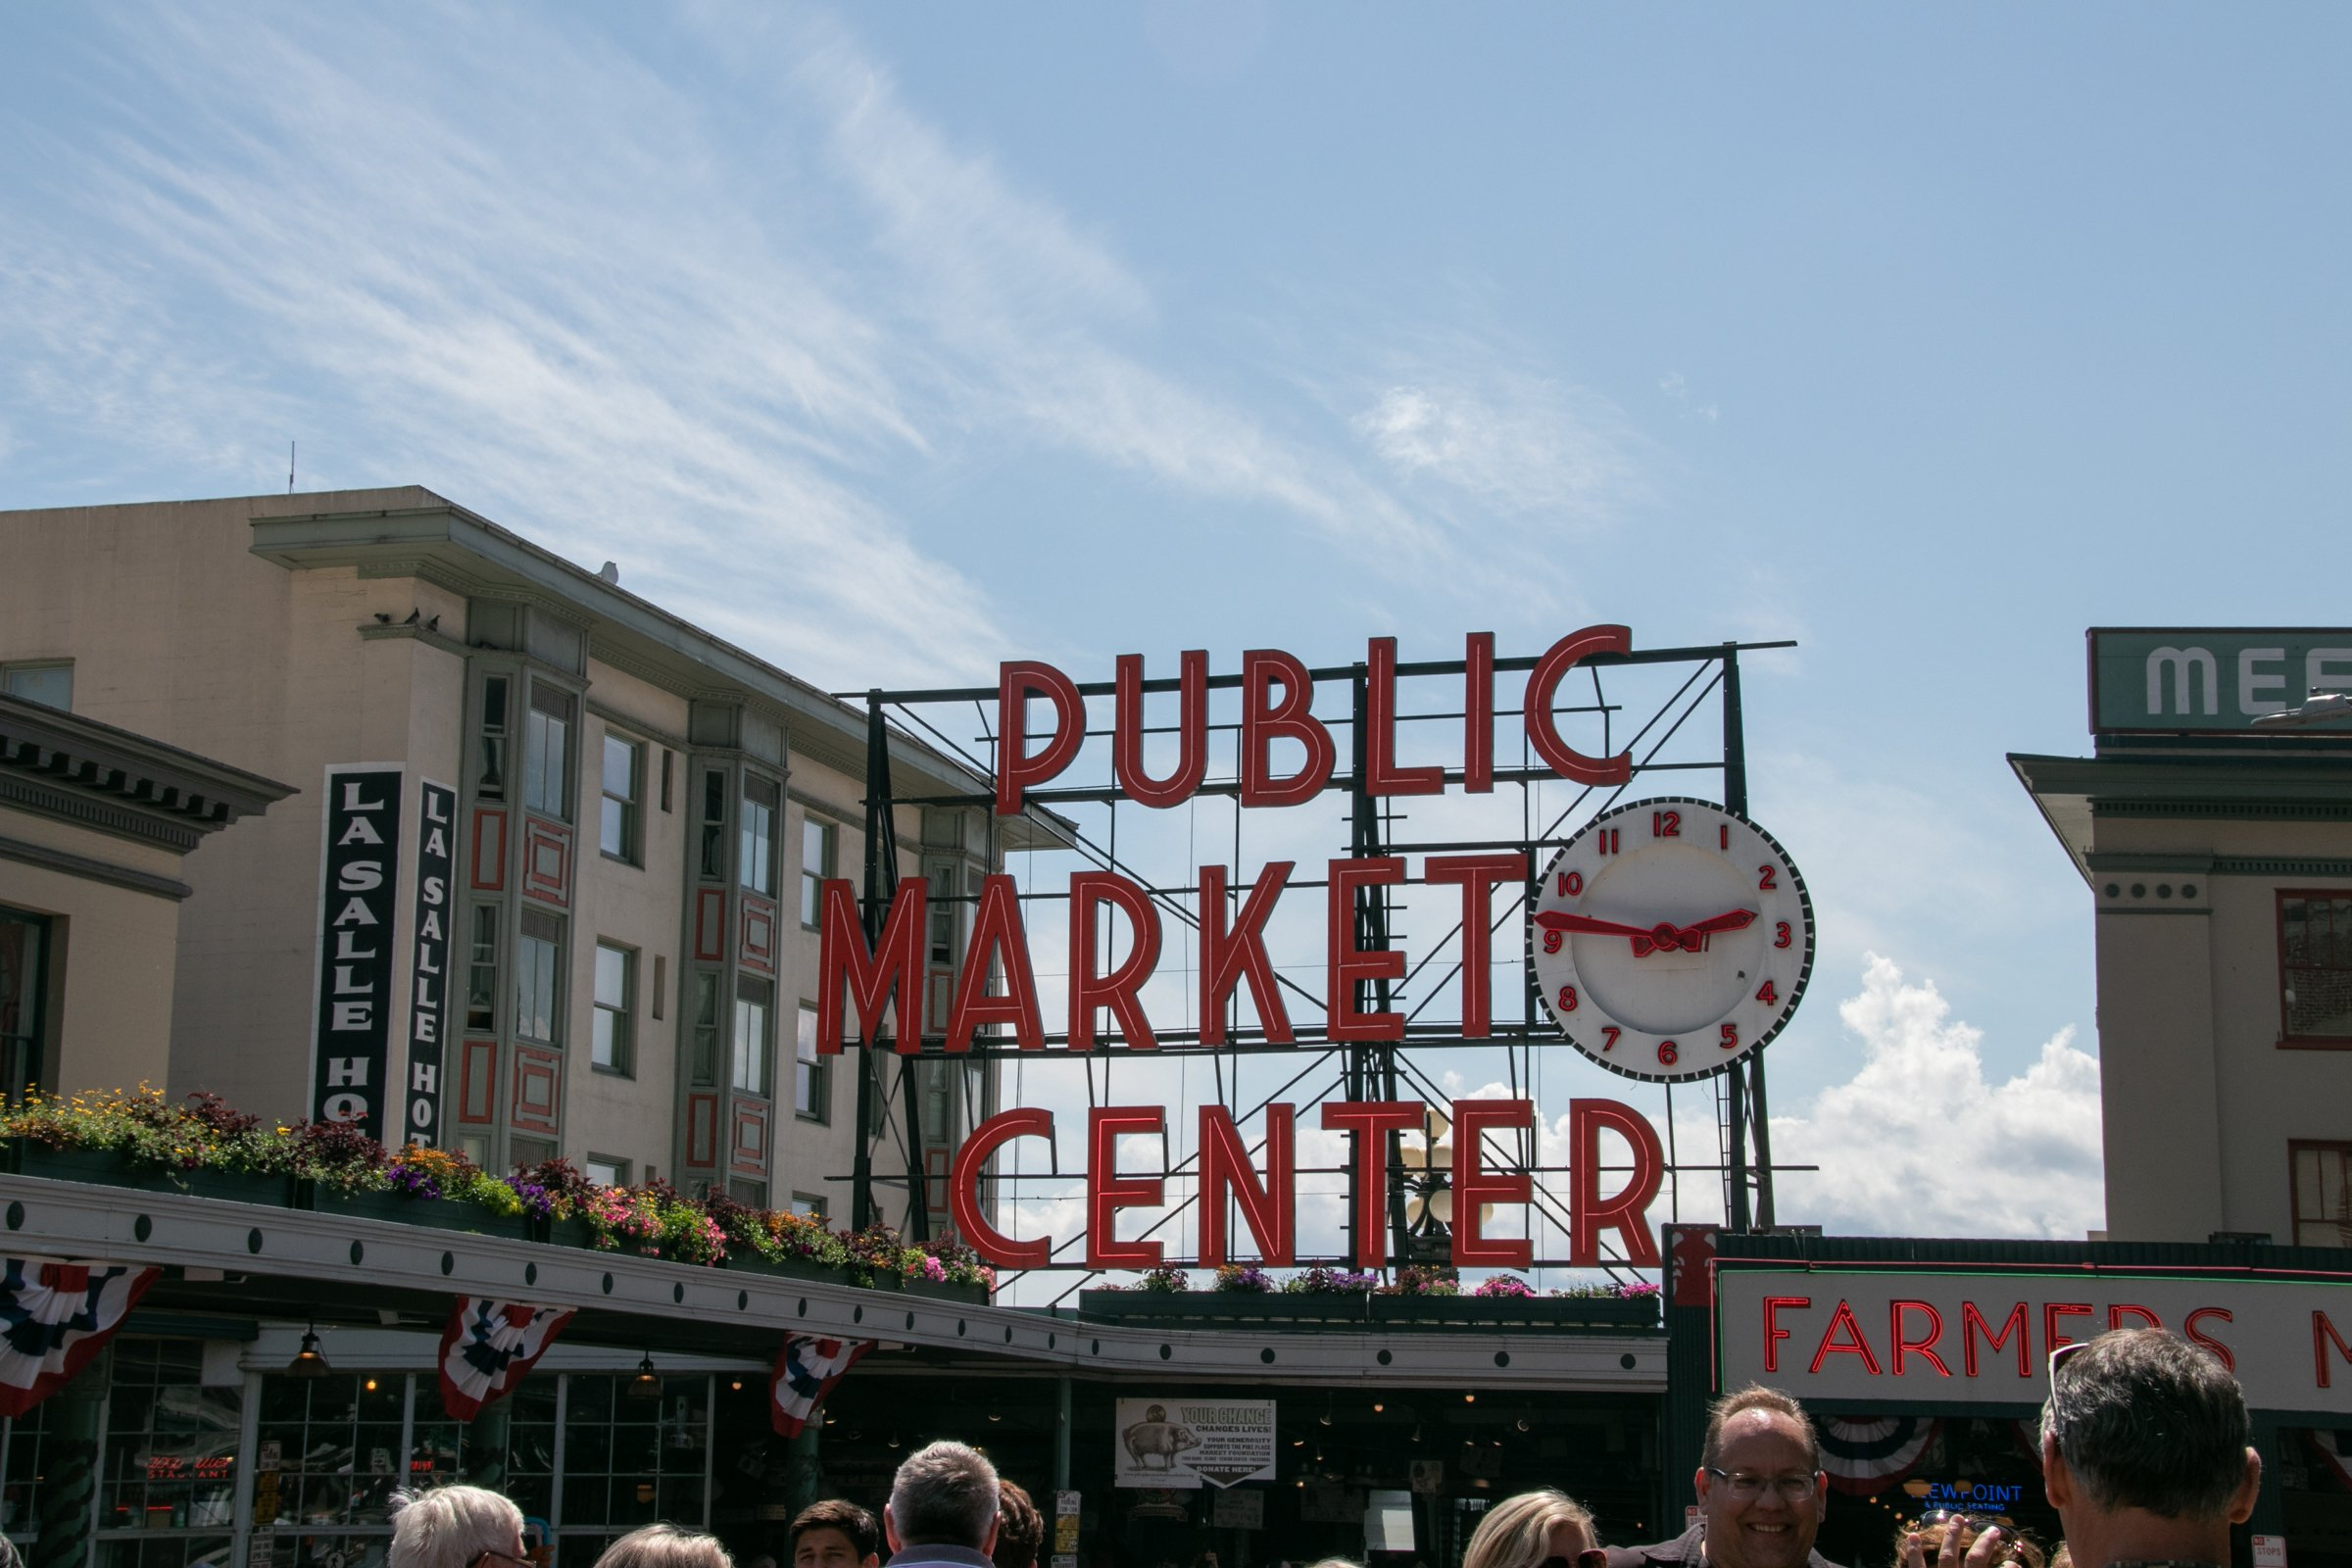 Signs And Clock In Pike Place Market